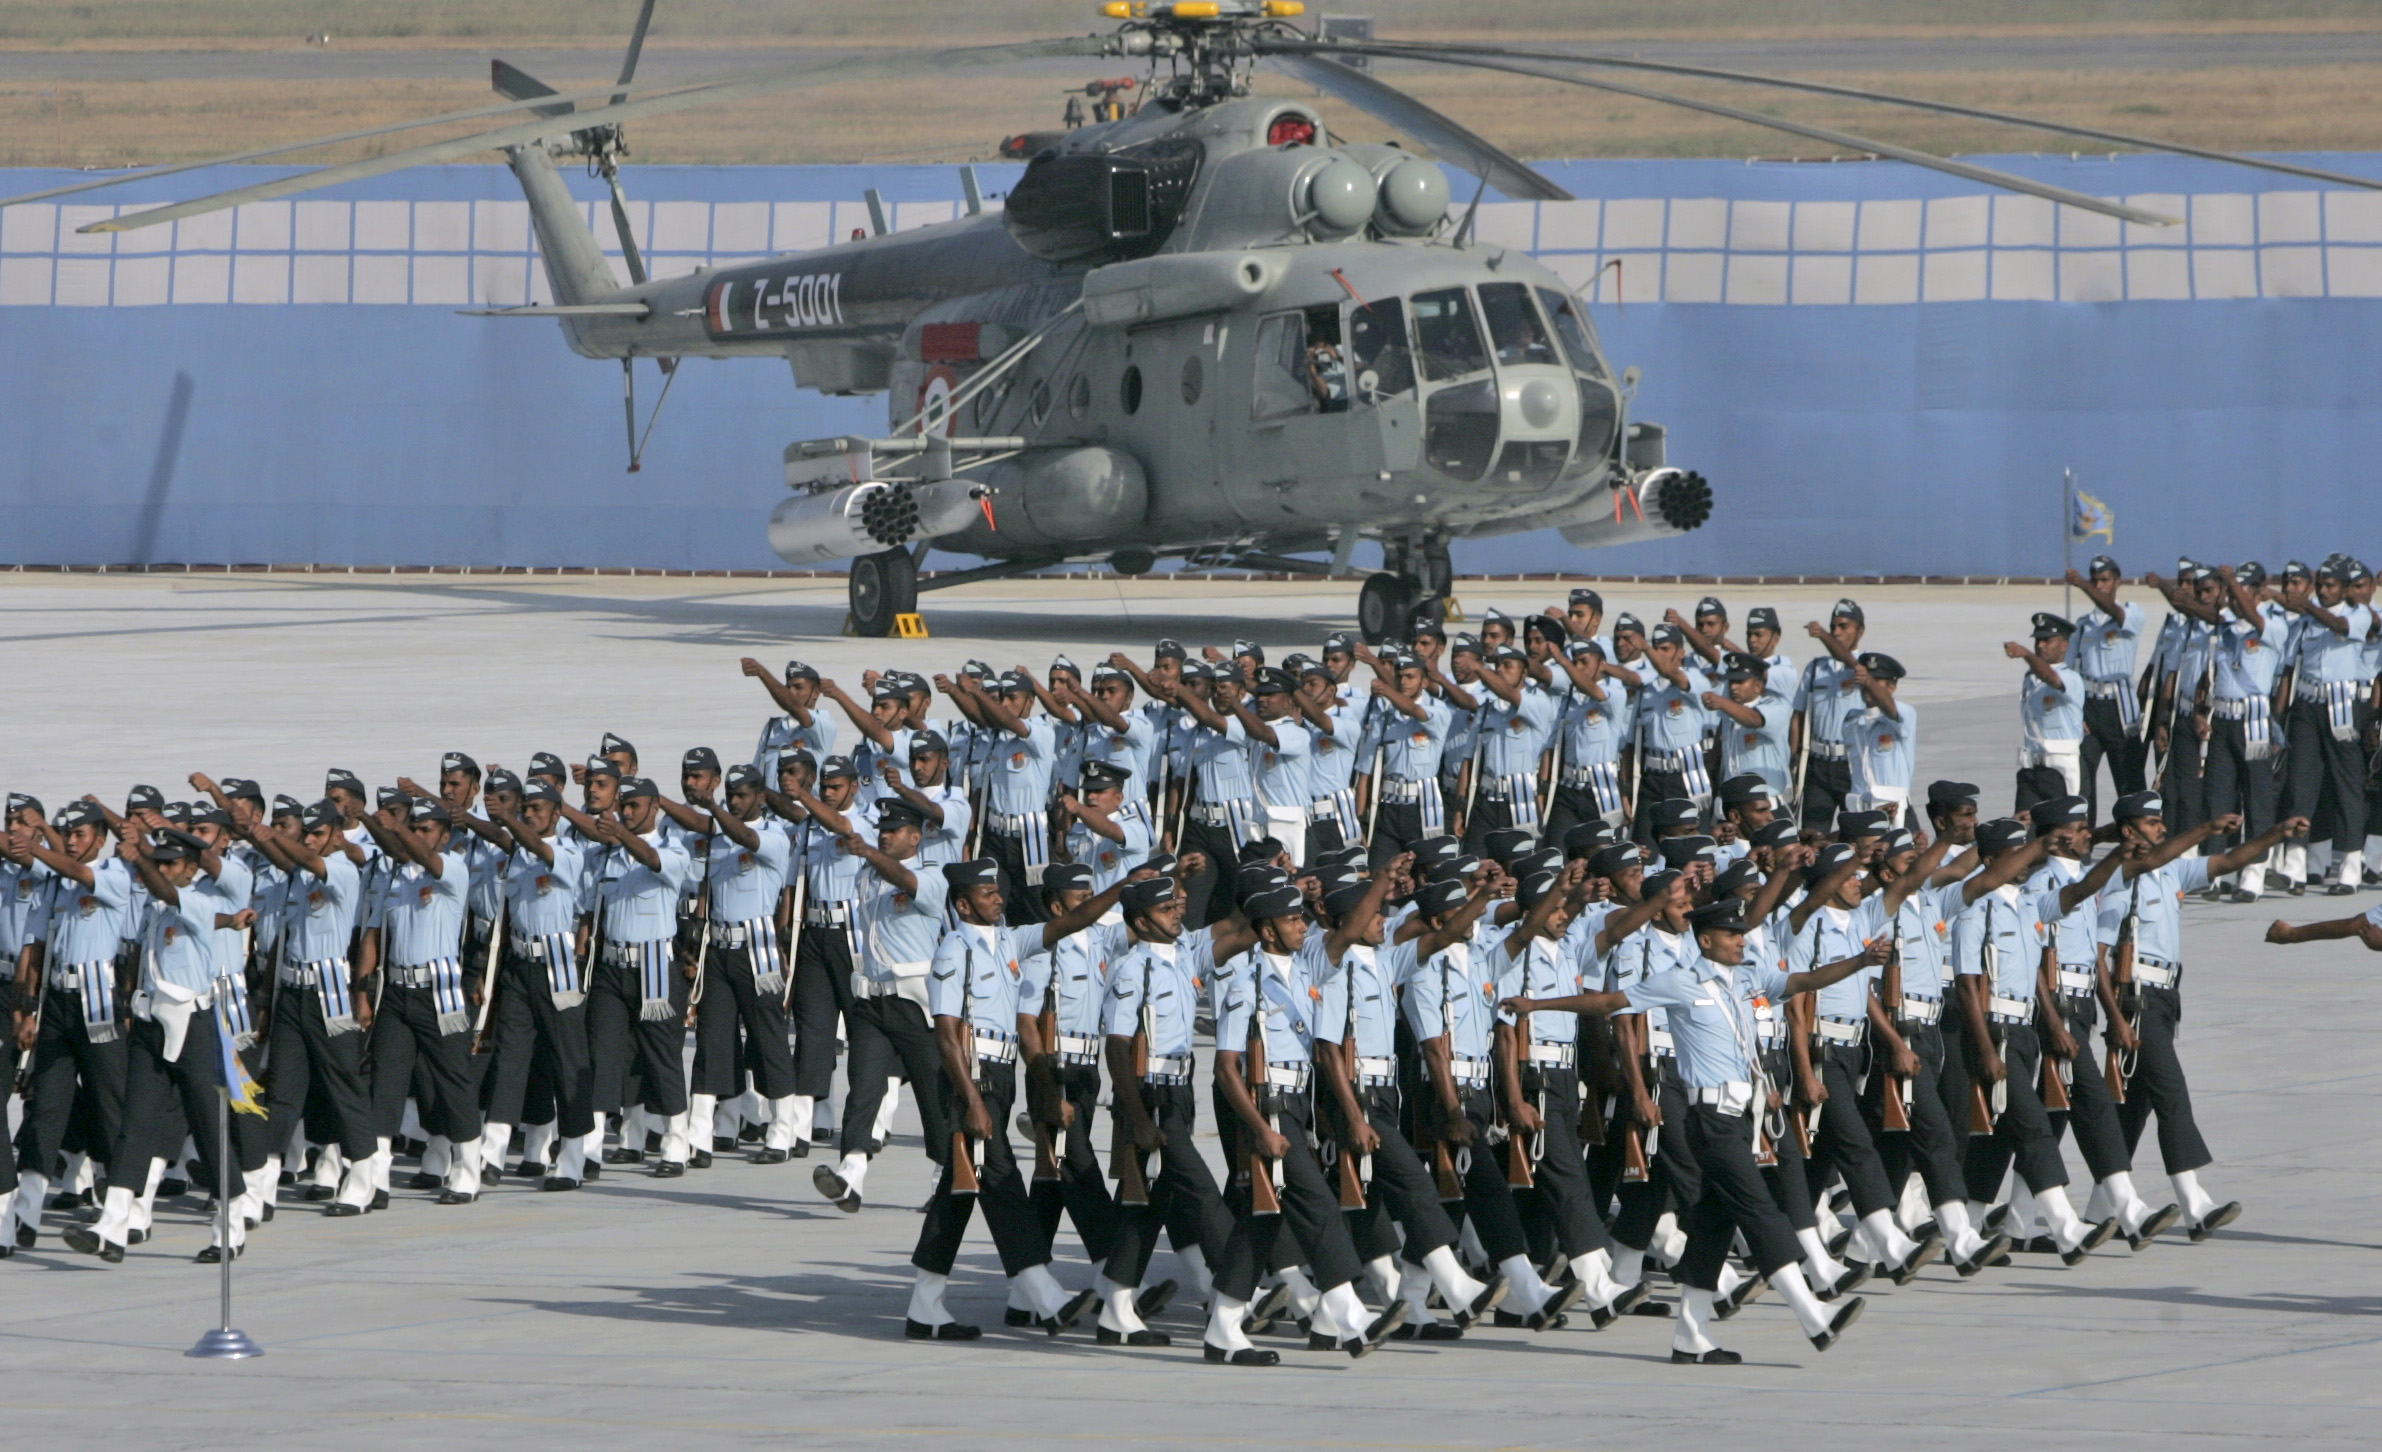 The latest version of India's Mi-17 is the V-5.